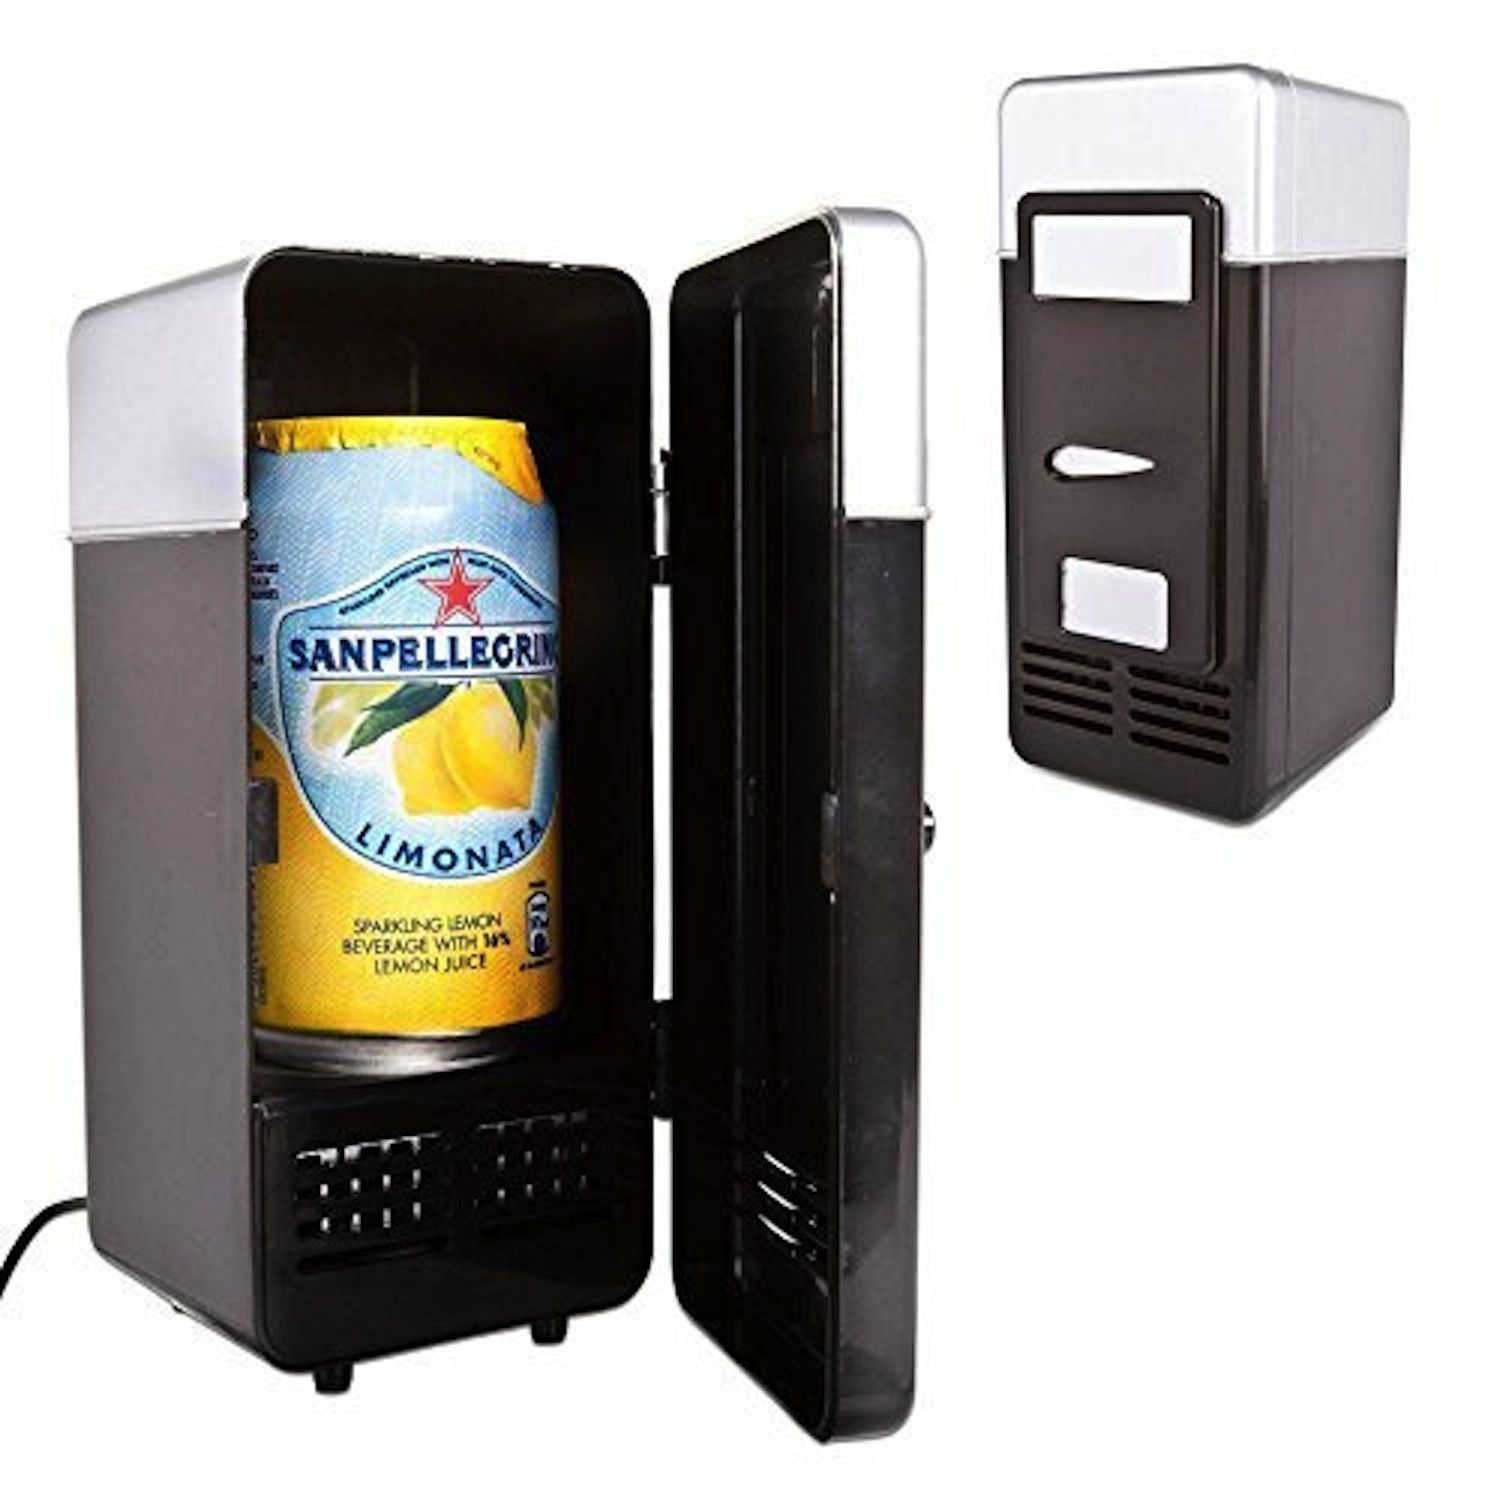 Neon® Portable USB Powered Mini Fridge Cooler and Warmer Can Refrigerator for Beverage, Drink, Beer - Plug and Play